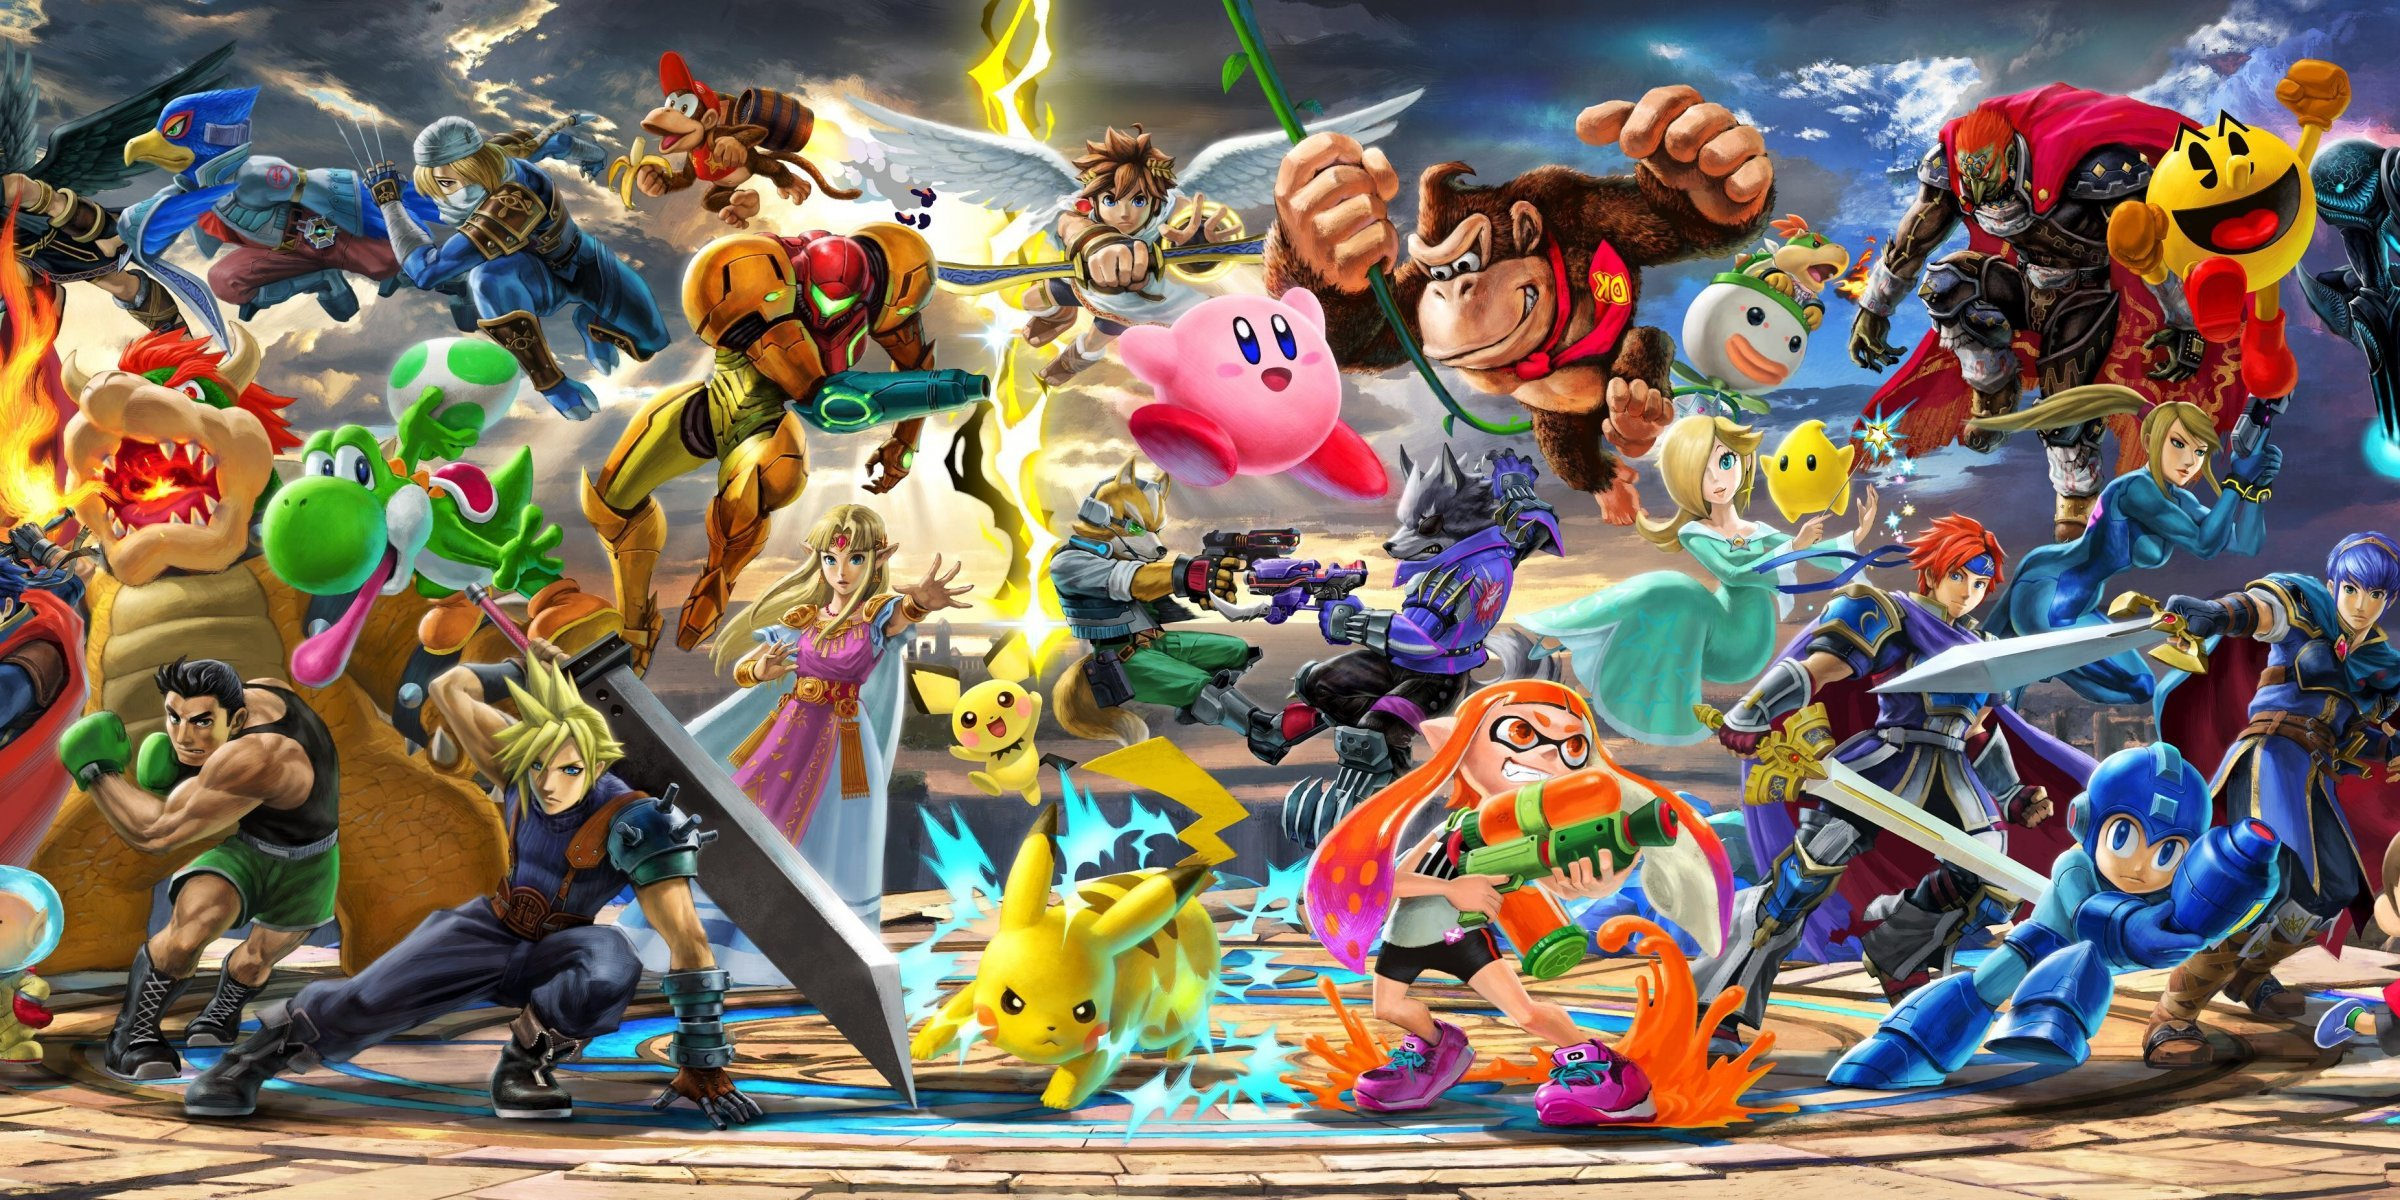 Super Smash Flash 2 Tier List 2020.Tier List In Super Smash Bros Ultimate Shacknews